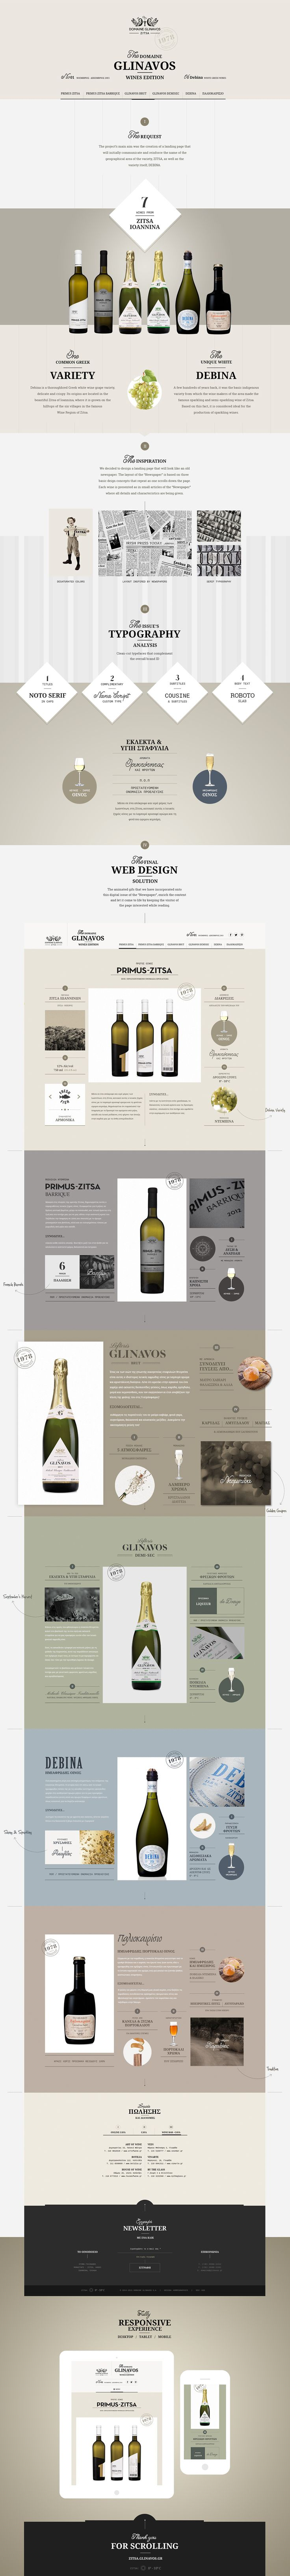 One scroll, landing page aiming at promoting 6 different wines of the Glinavos…